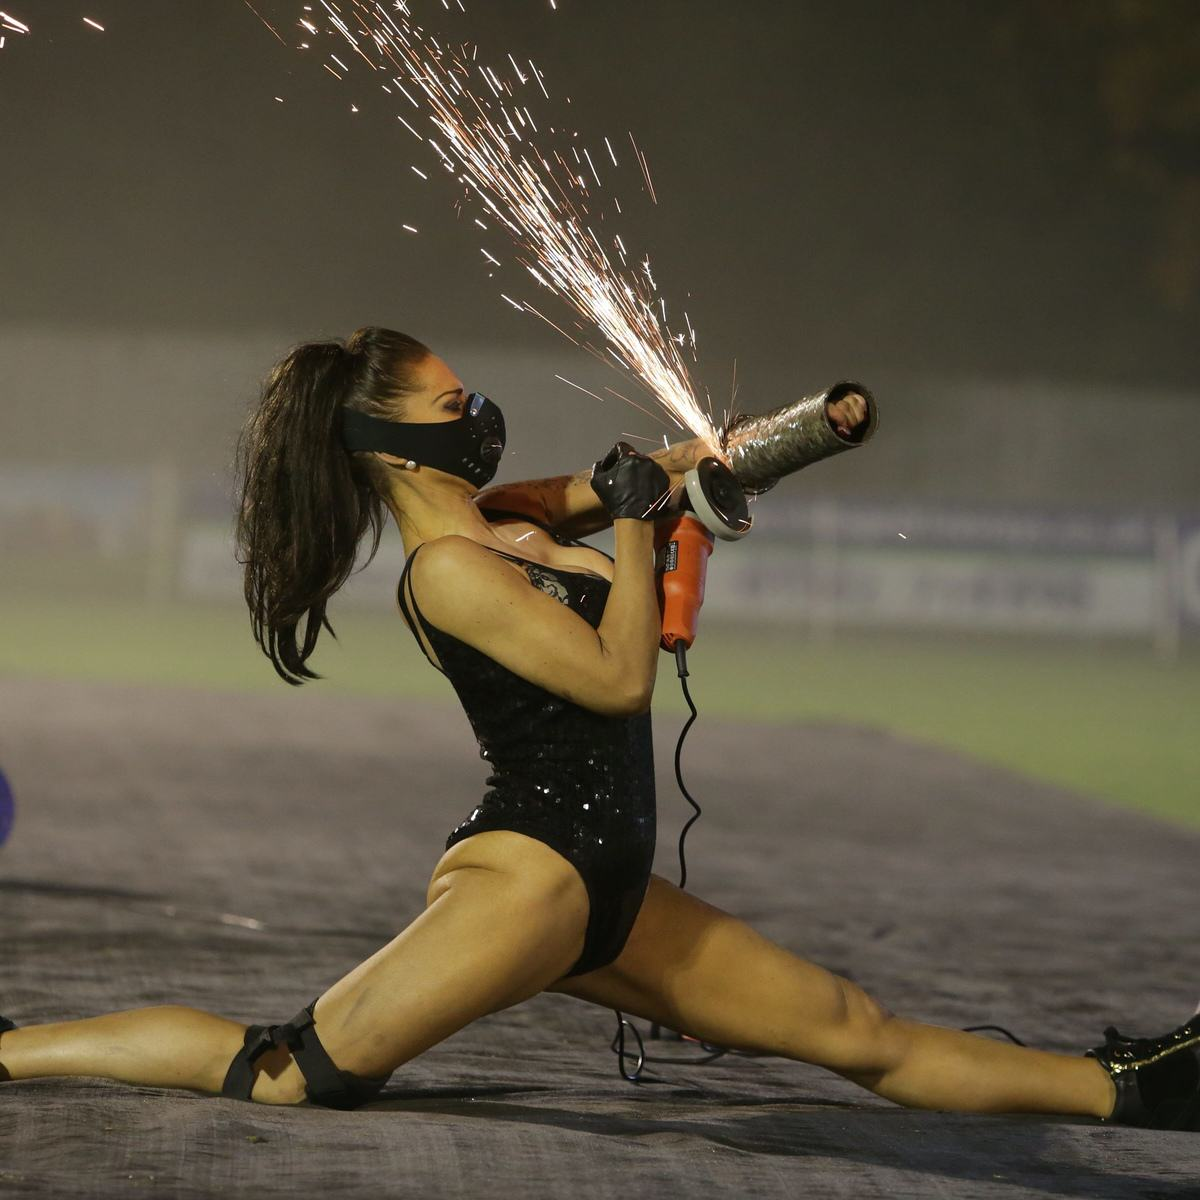 Mayor Hired Leather Clad Stunt Women For Family Bonfire Night Display UNILAD SWNS SPARKS 00375696